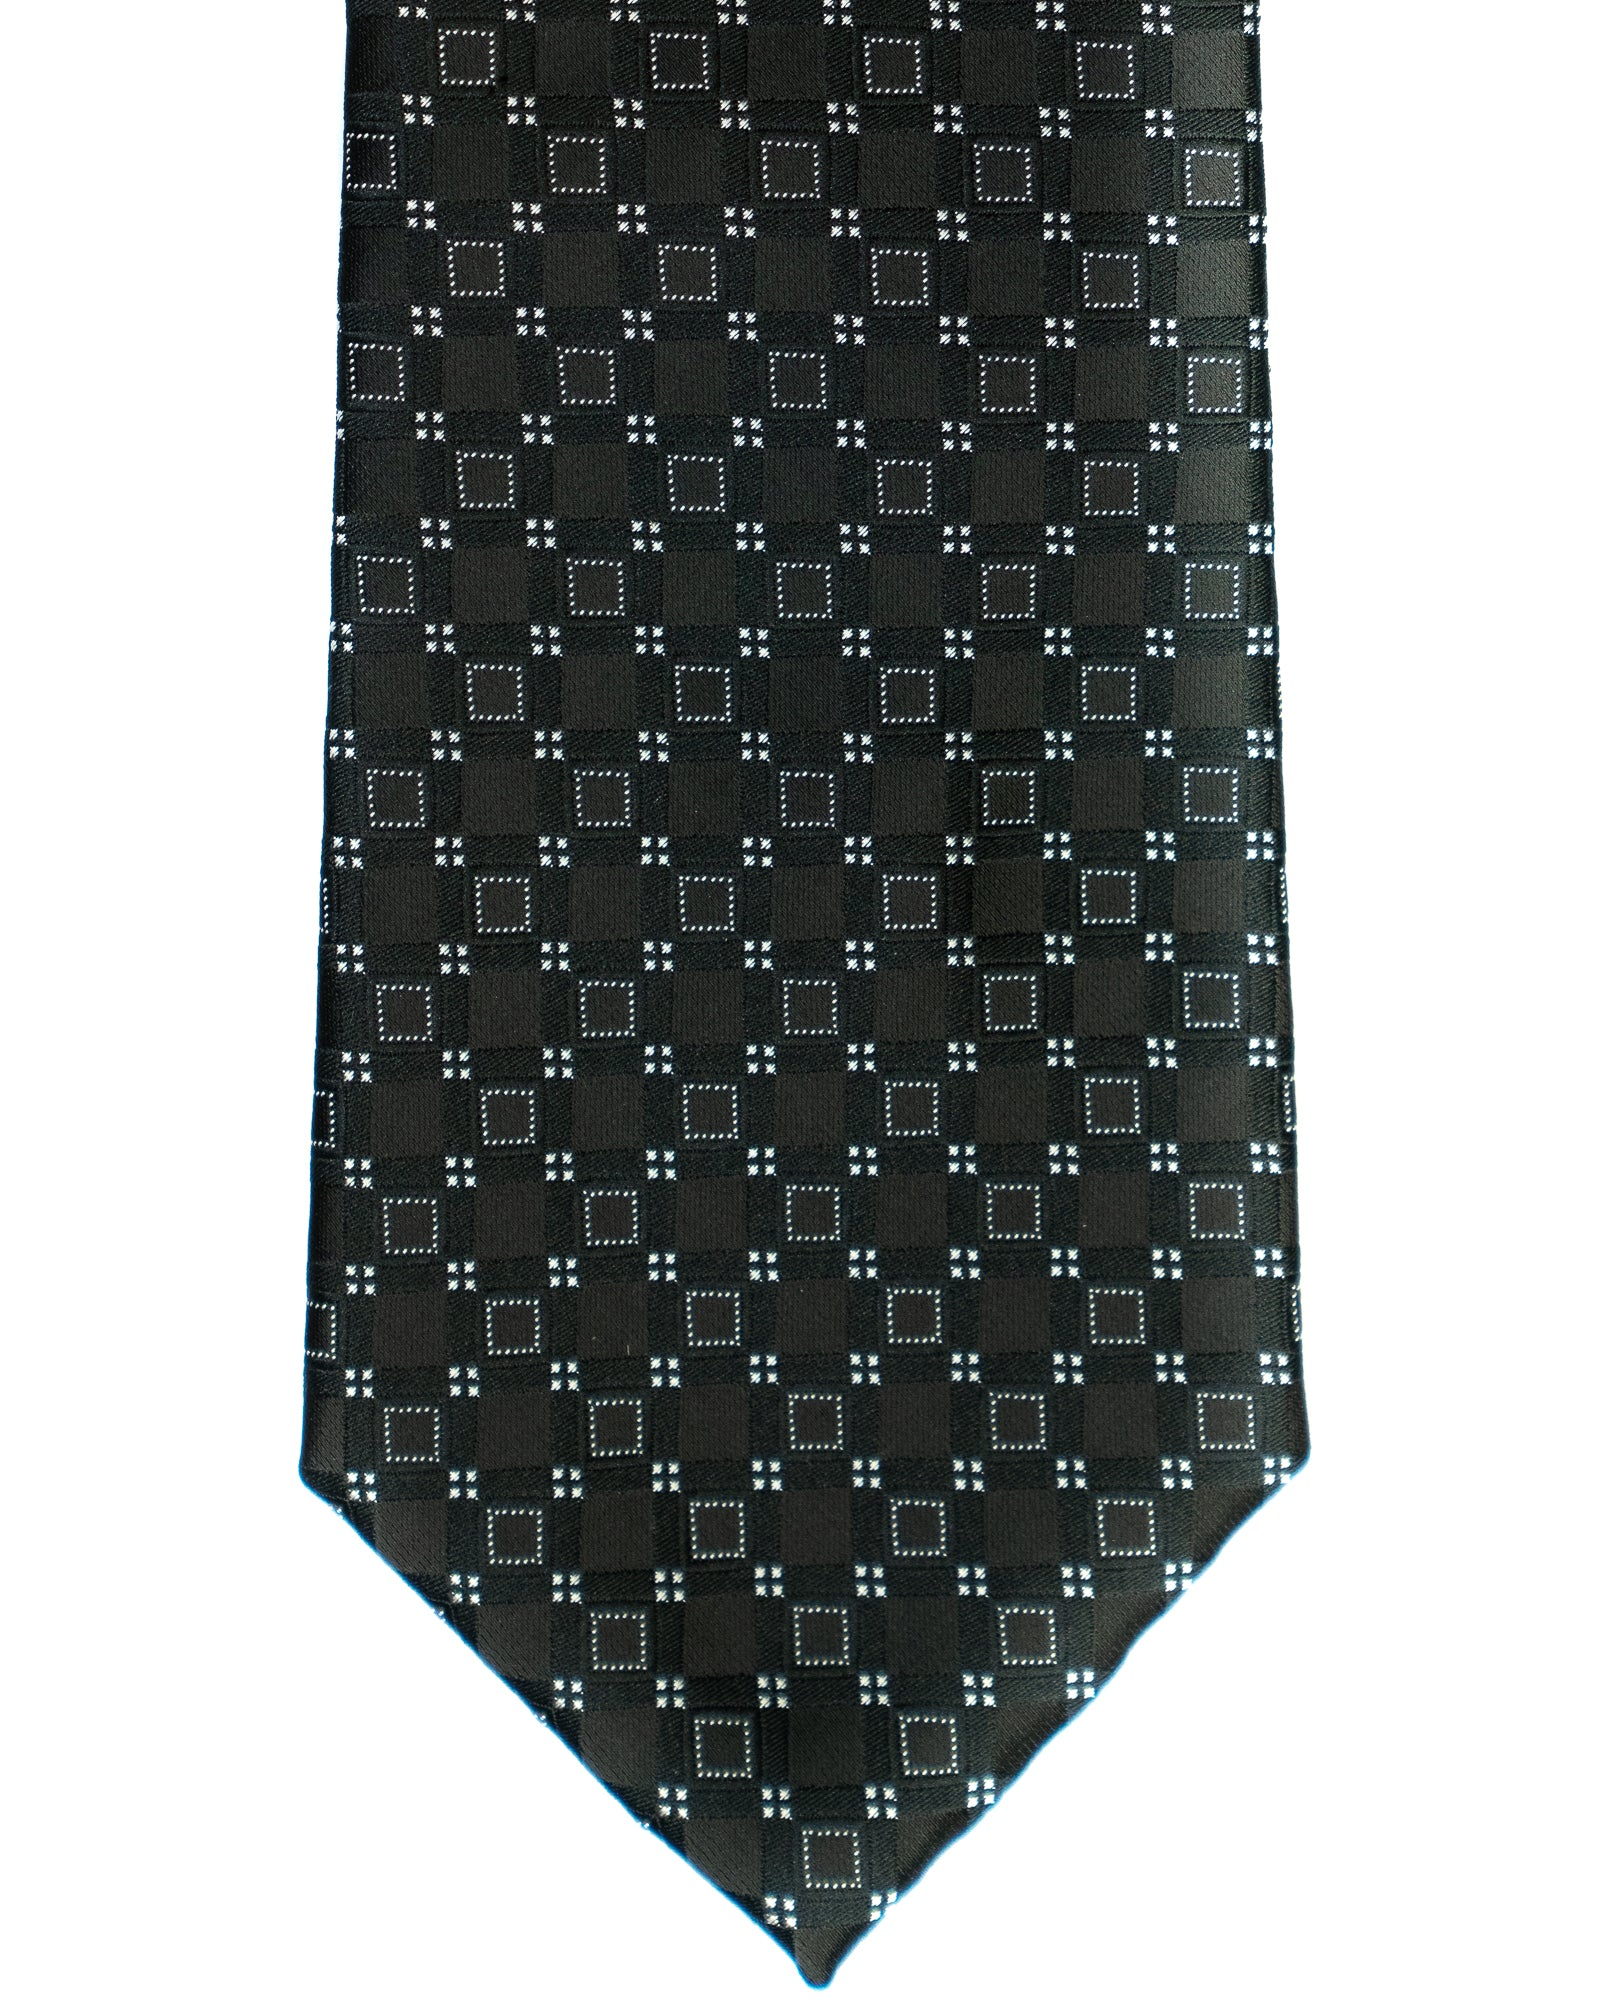 Imani Uomo Square Tie in Black with Silver - Rainwater's Men's Clothing and Tuxedo Rental